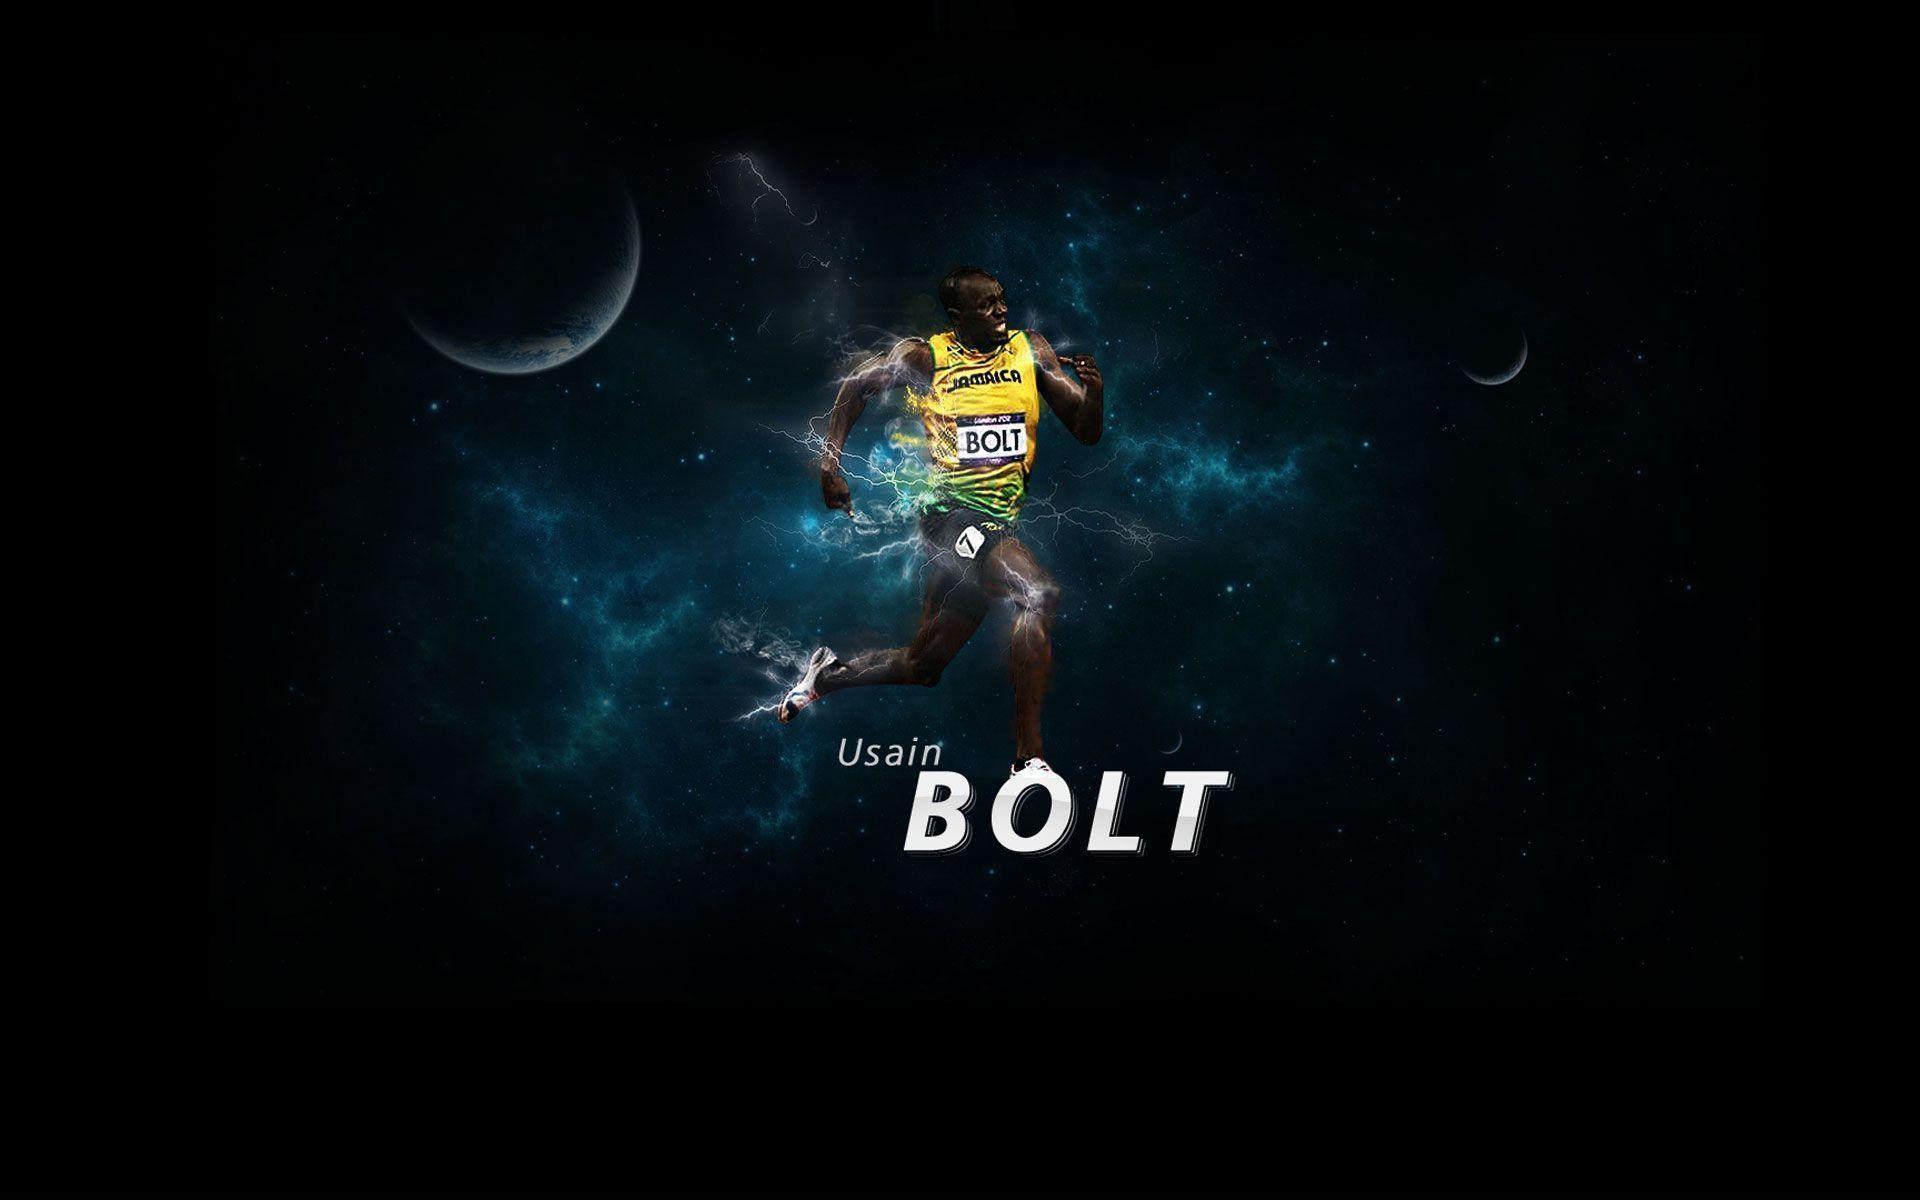 Usain Bolt runs like Puma wallpapers and images - wallpapers ...